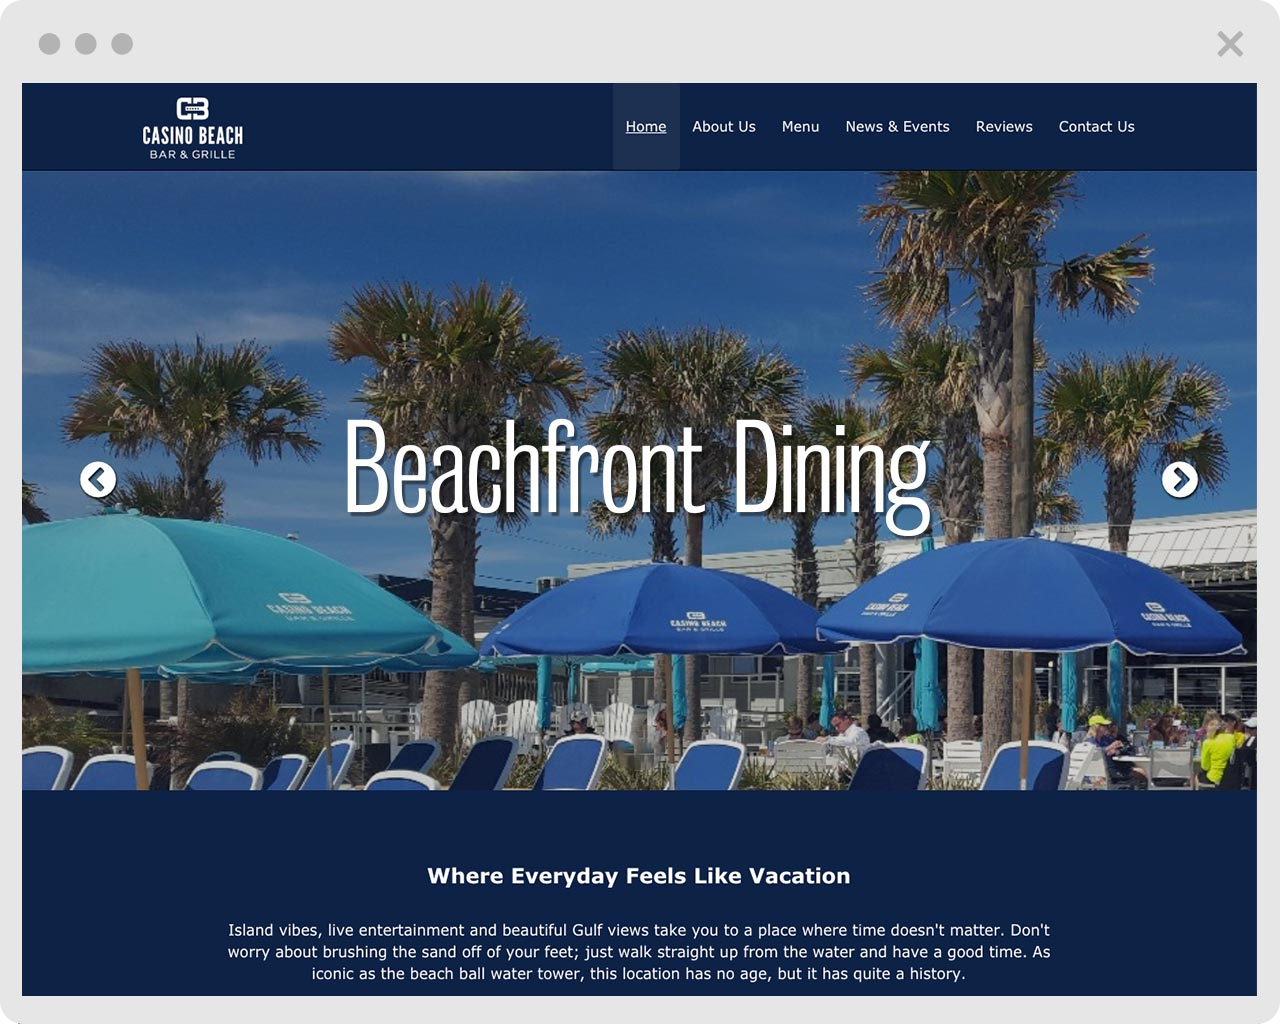 image of Casino Beach Bar and Grill webpage